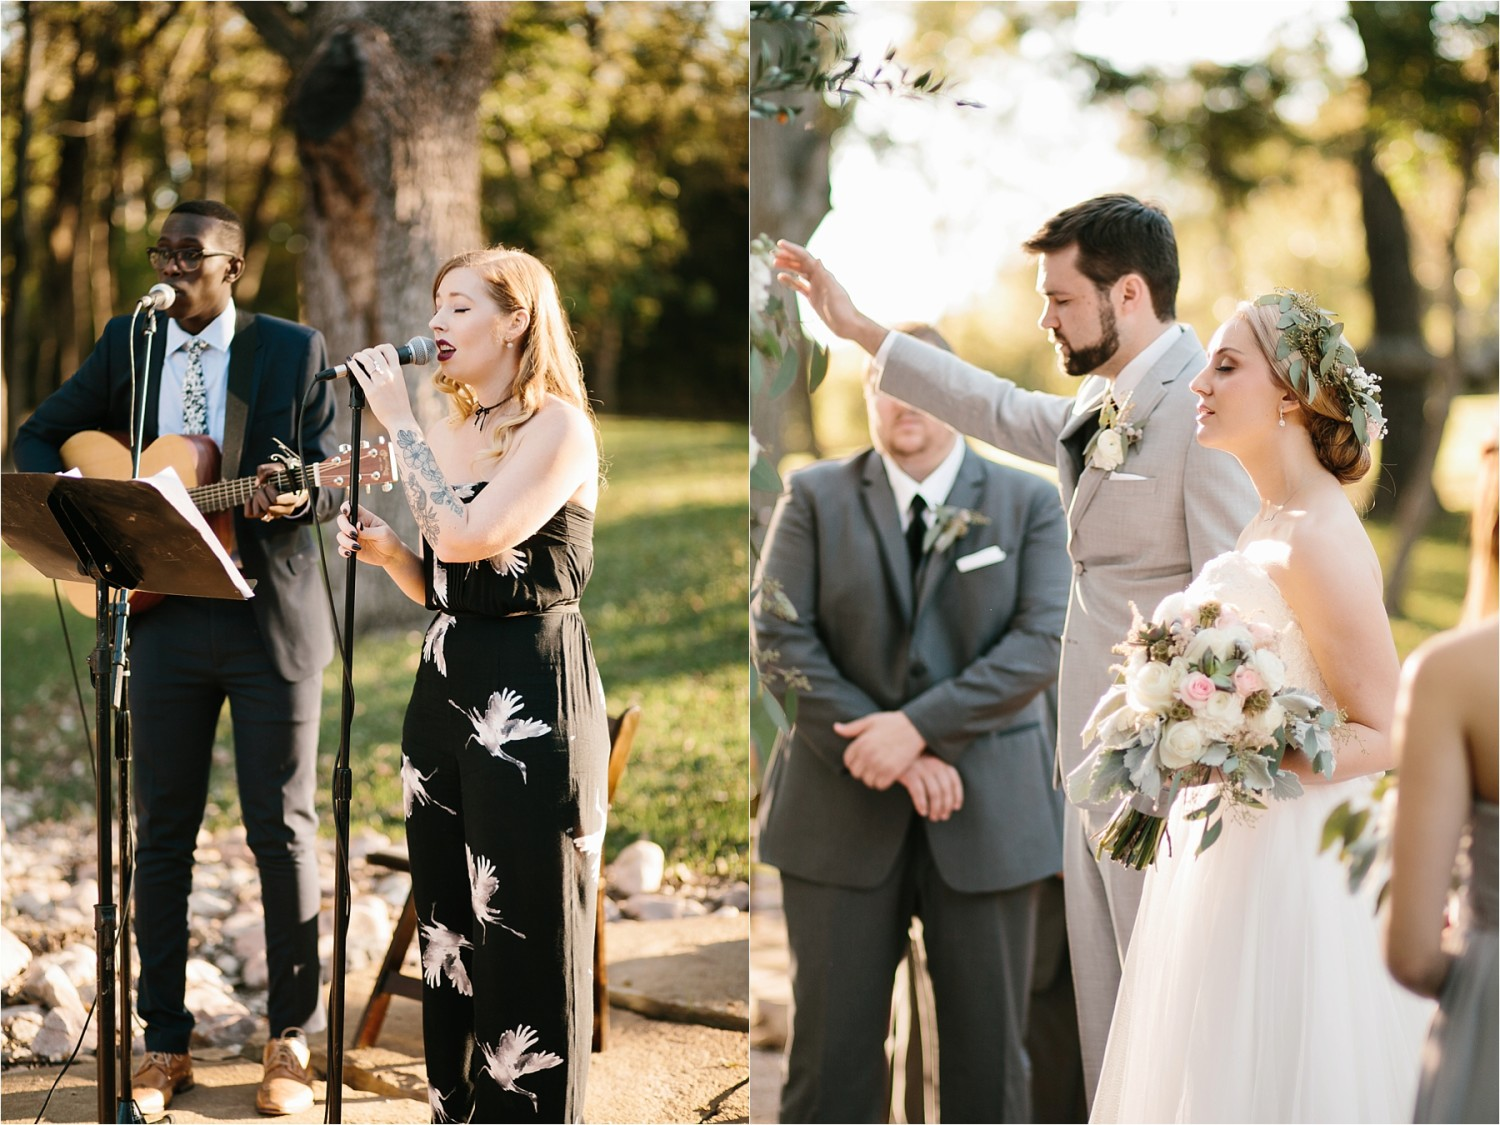 brad-lara-__-a-grey-and-blush-pink-intimate-wedding-at-hidden-waters-event-center-in-waxahachie-tx-by-north-texas-wedding-photographer-rachel-meagan-photography-_-046